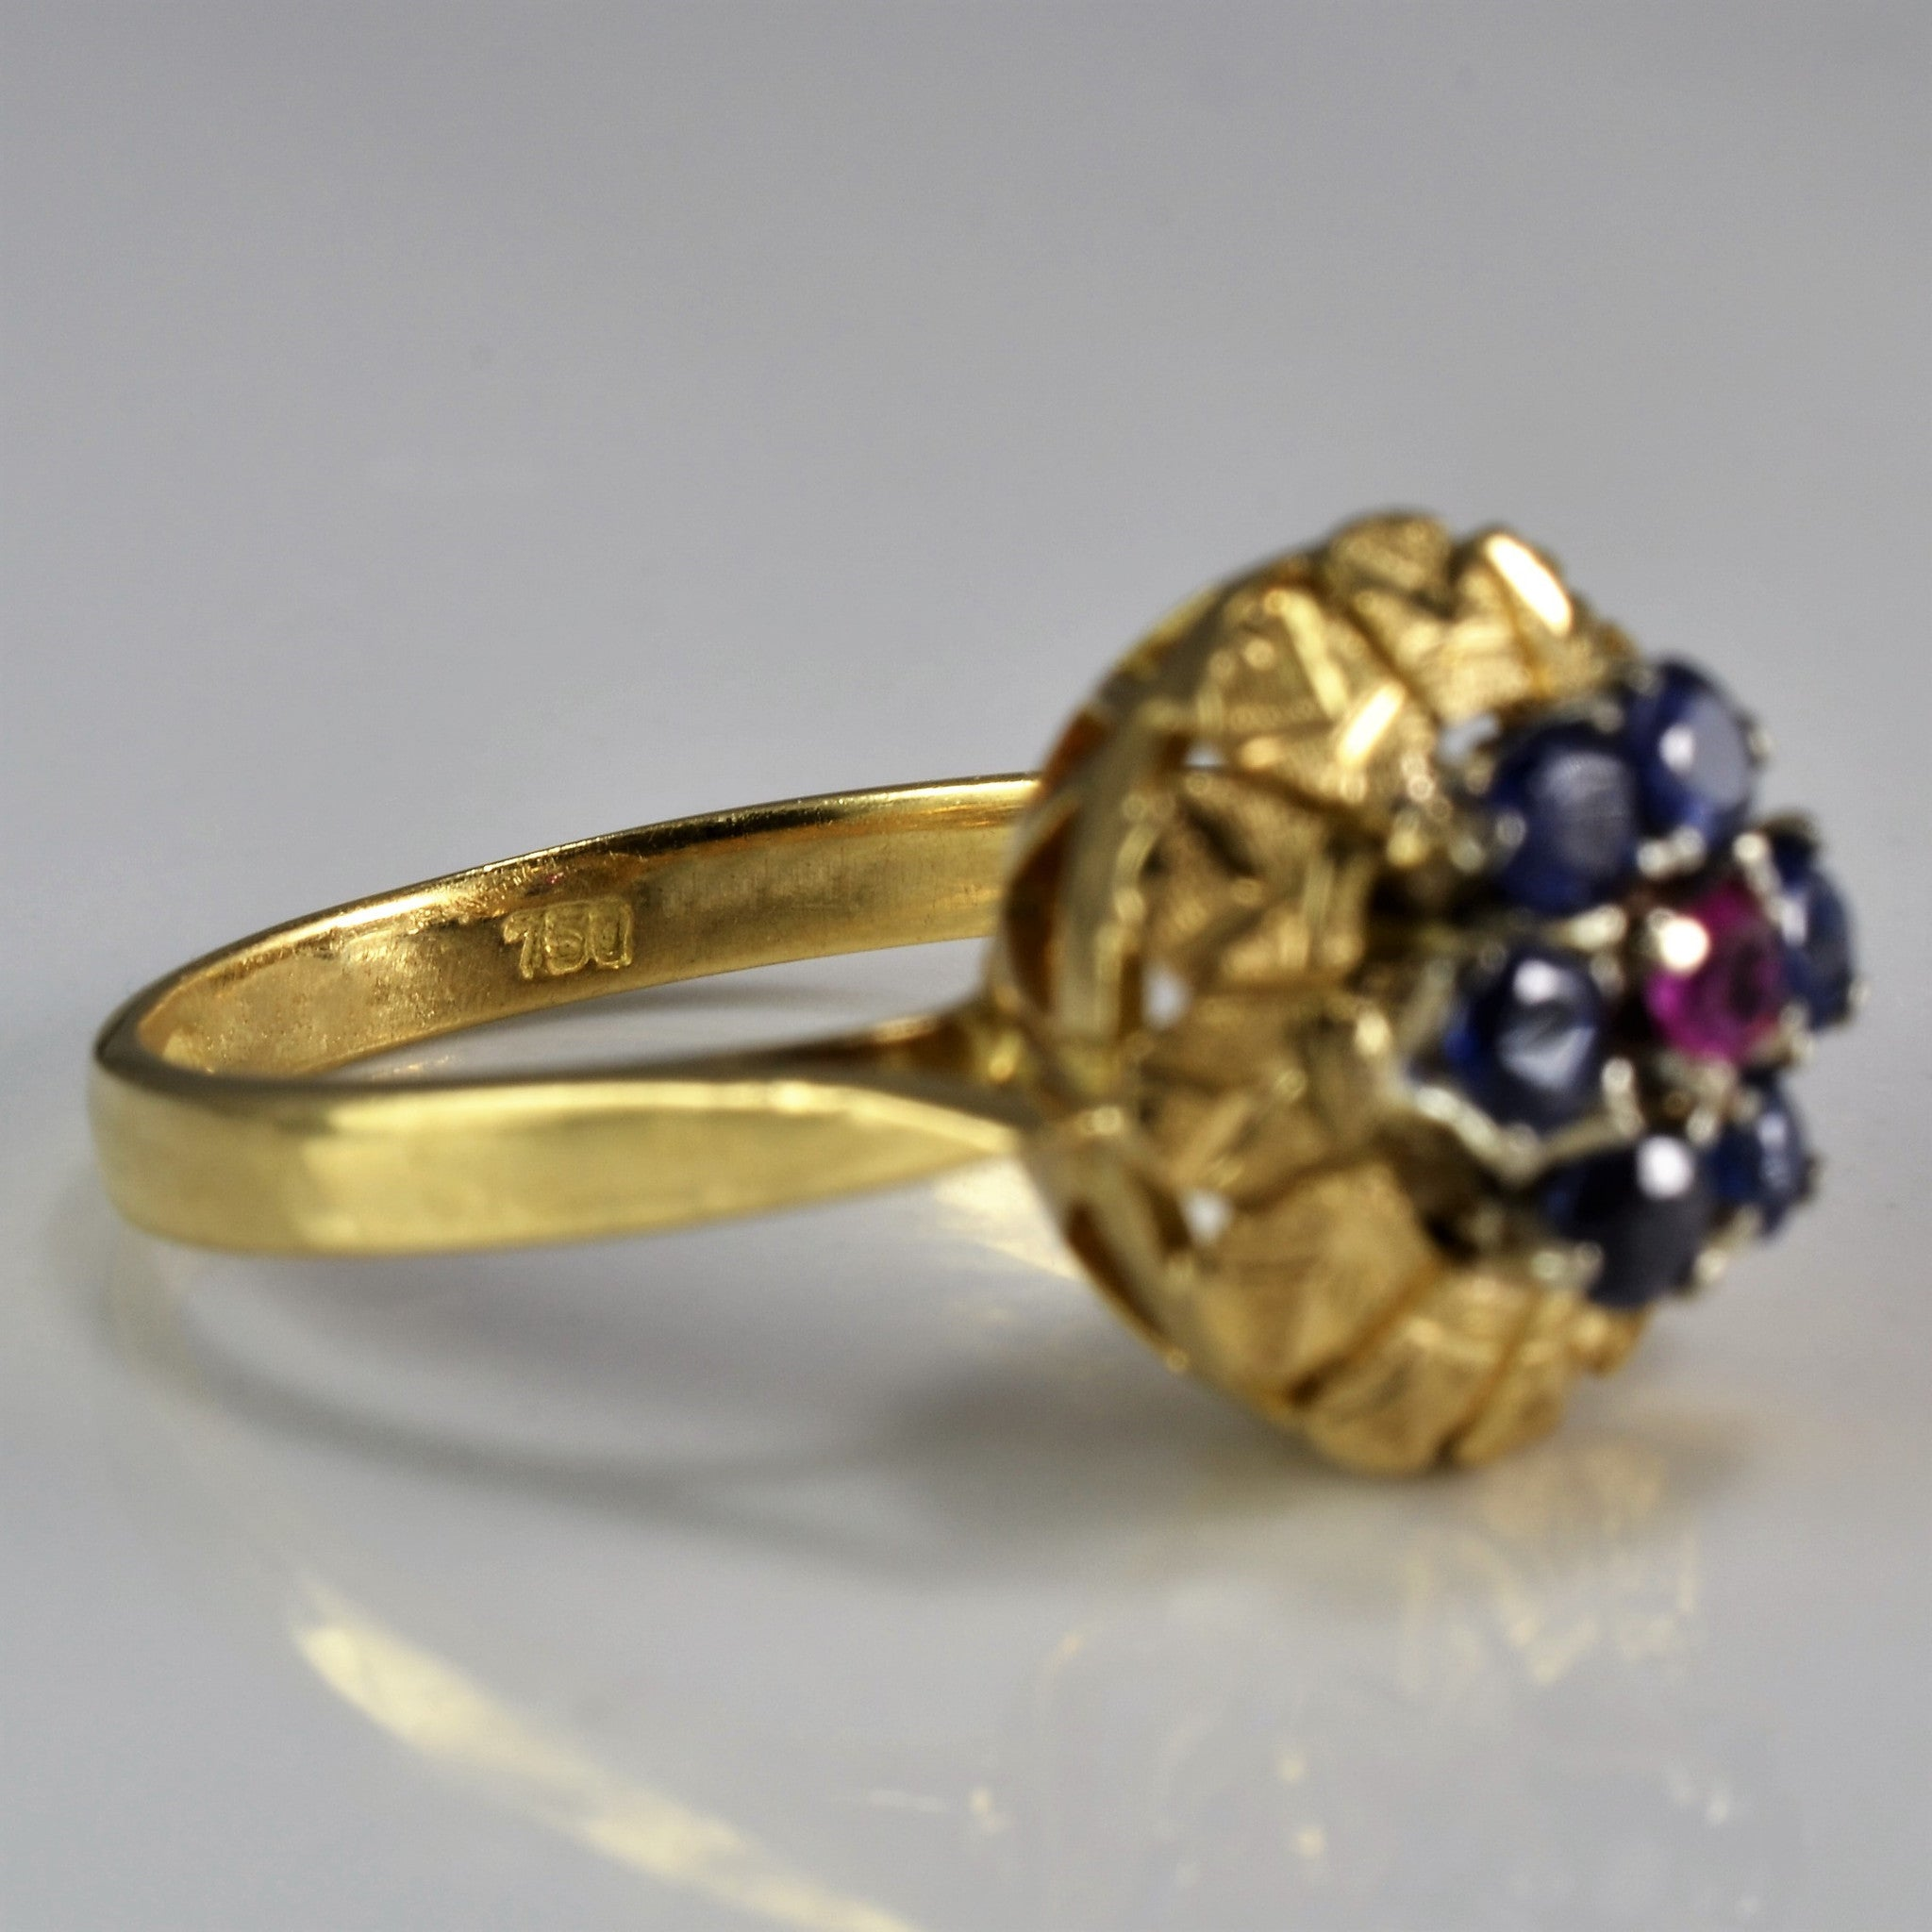 Vintage Sapphire & Ruby Cluster Ring | SZ 4.25 |